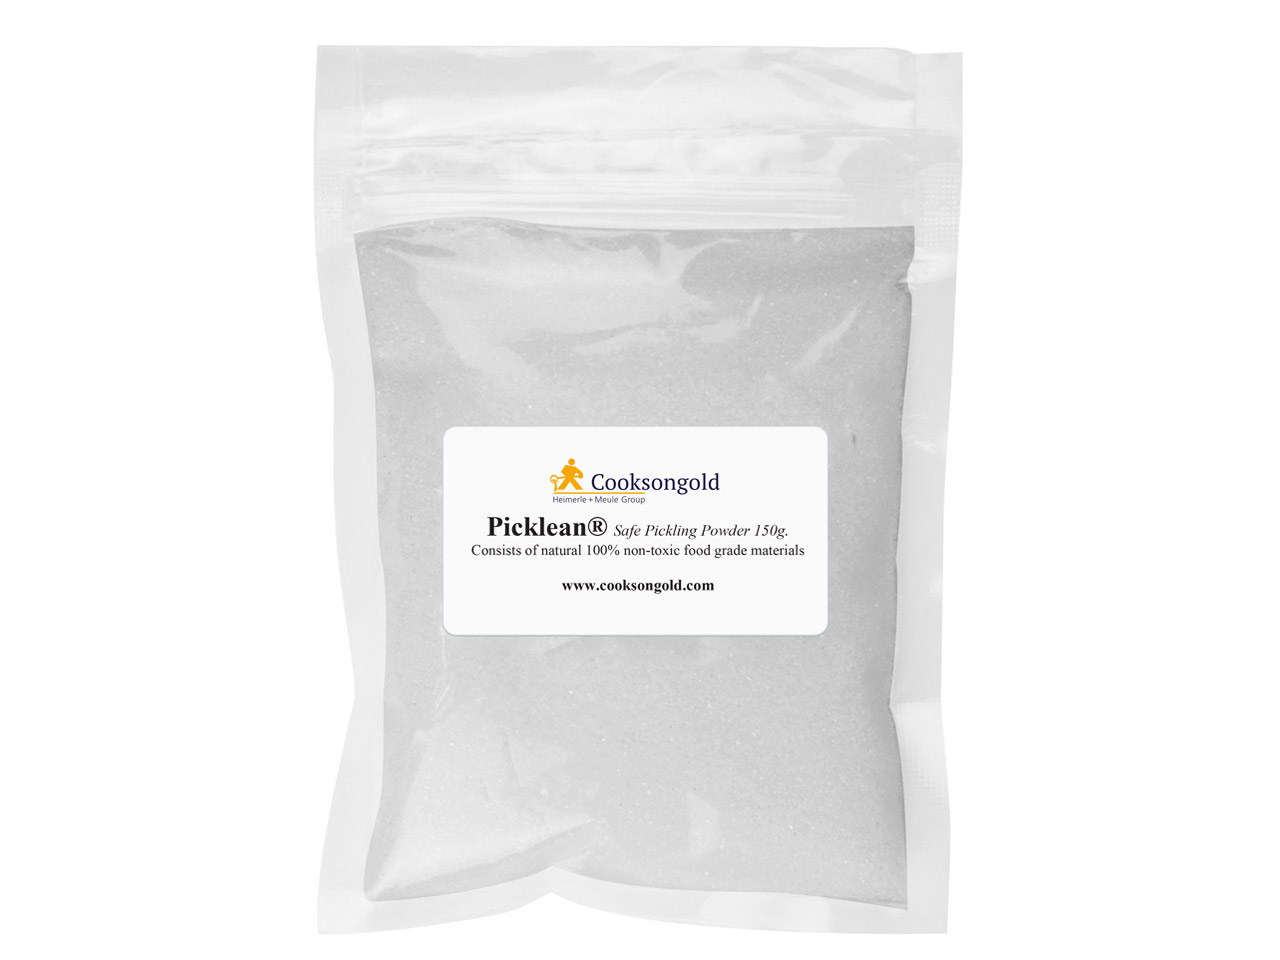 Picklean Safe Pickling Powder 150g